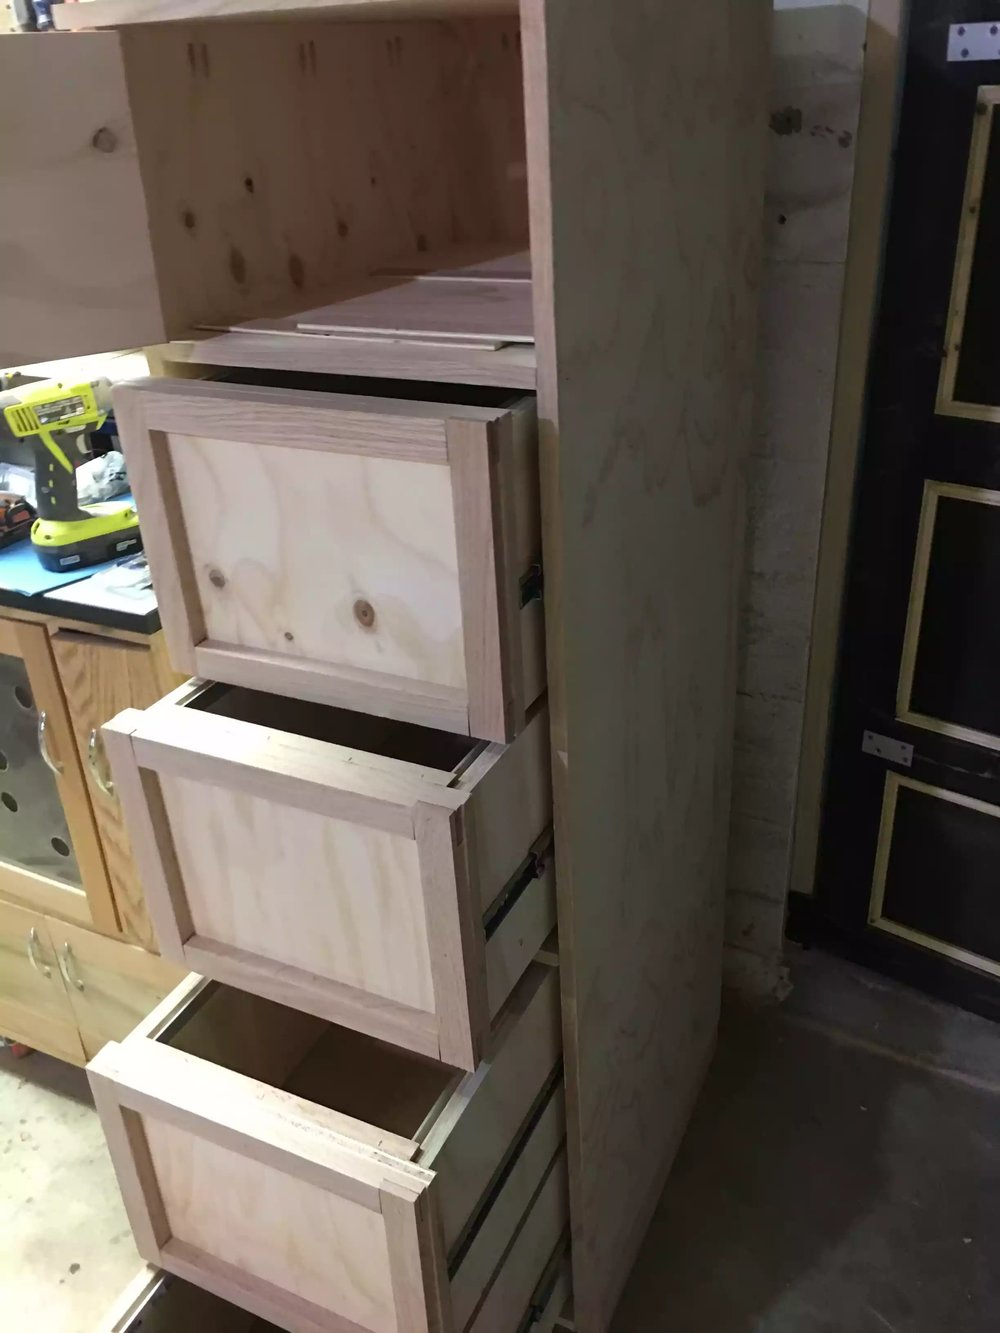 False fronts added to the drawers